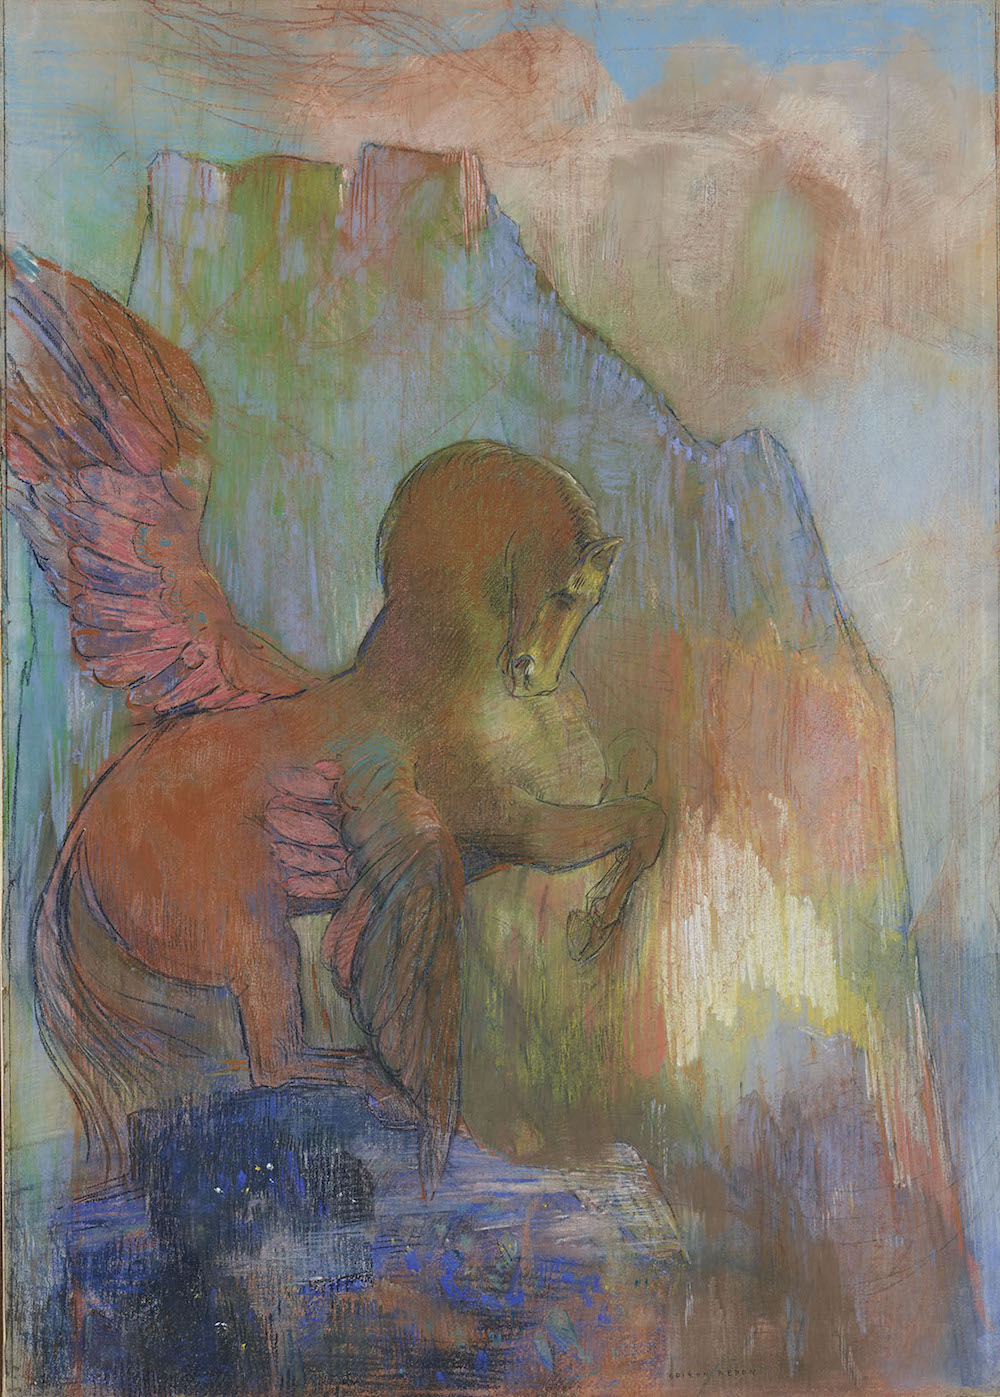 Pégase by Odilon Redon, circa 1895-1900, Private Collection